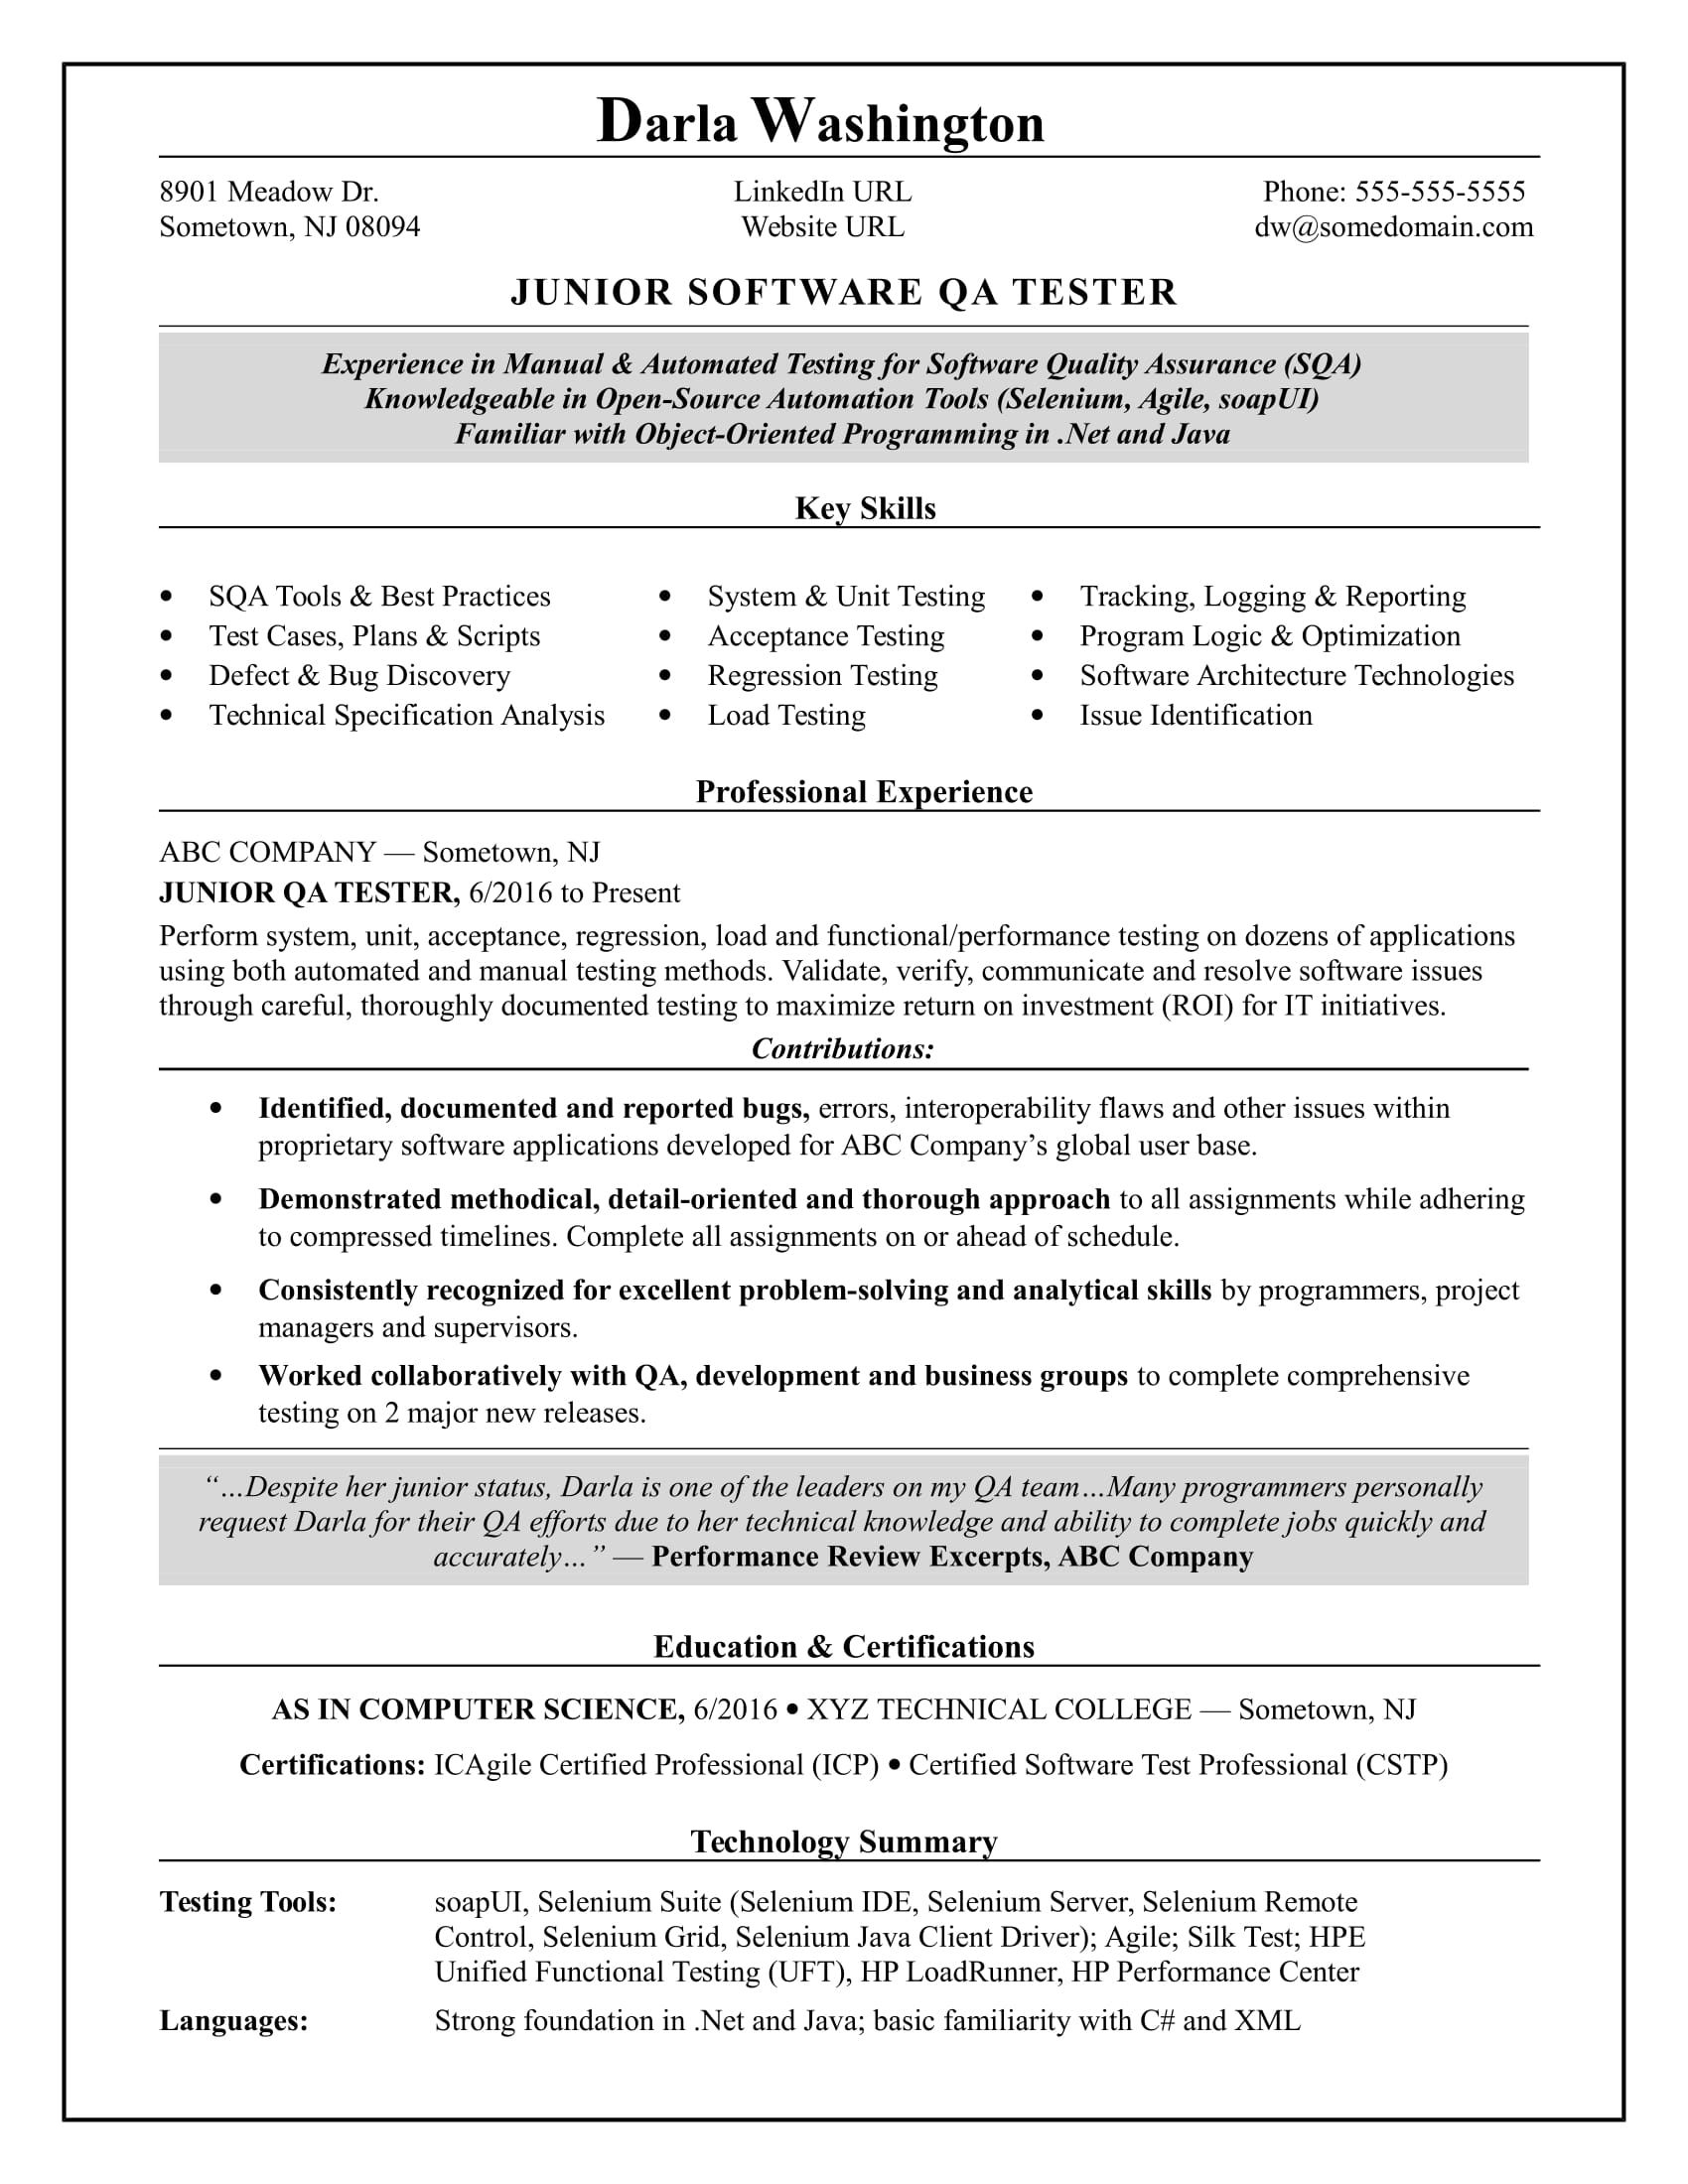 Entry-Level QA Software Tester Resume Sample | Monster.com